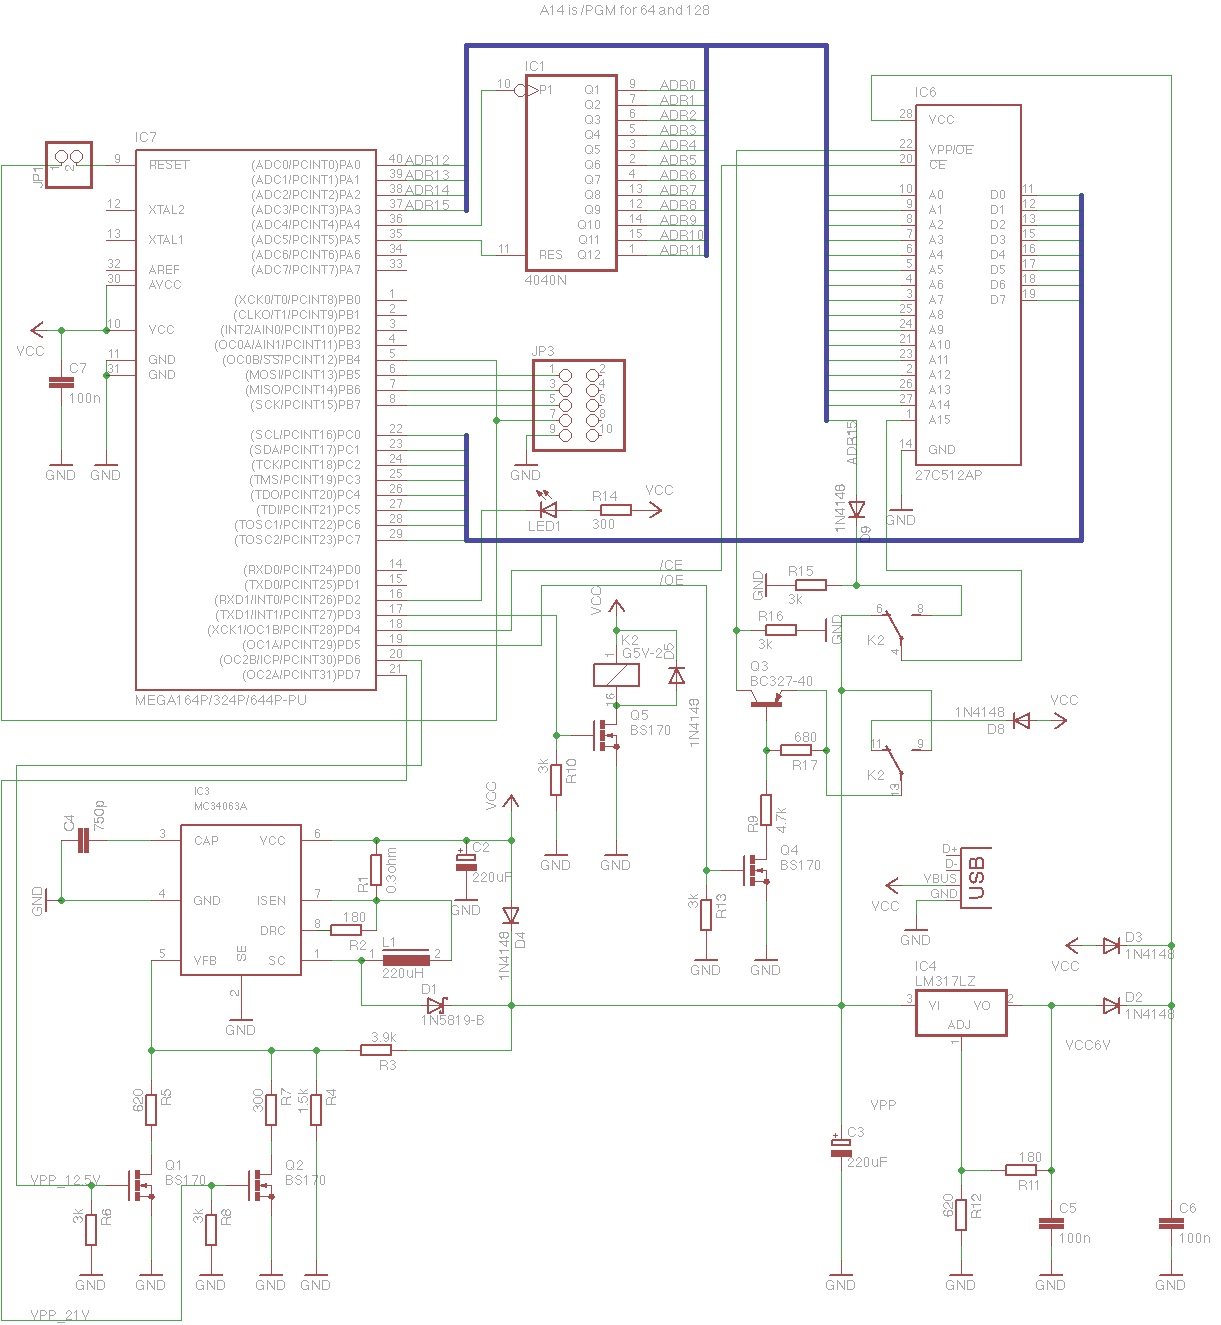 Eeprom Logic Diagram Circuit Wiring Diagrams Pic32mx Driving A Stepper Motor Northwestern Mechatronics Wiki Usbtinyisp Attached Eprom Programmer Gates 26